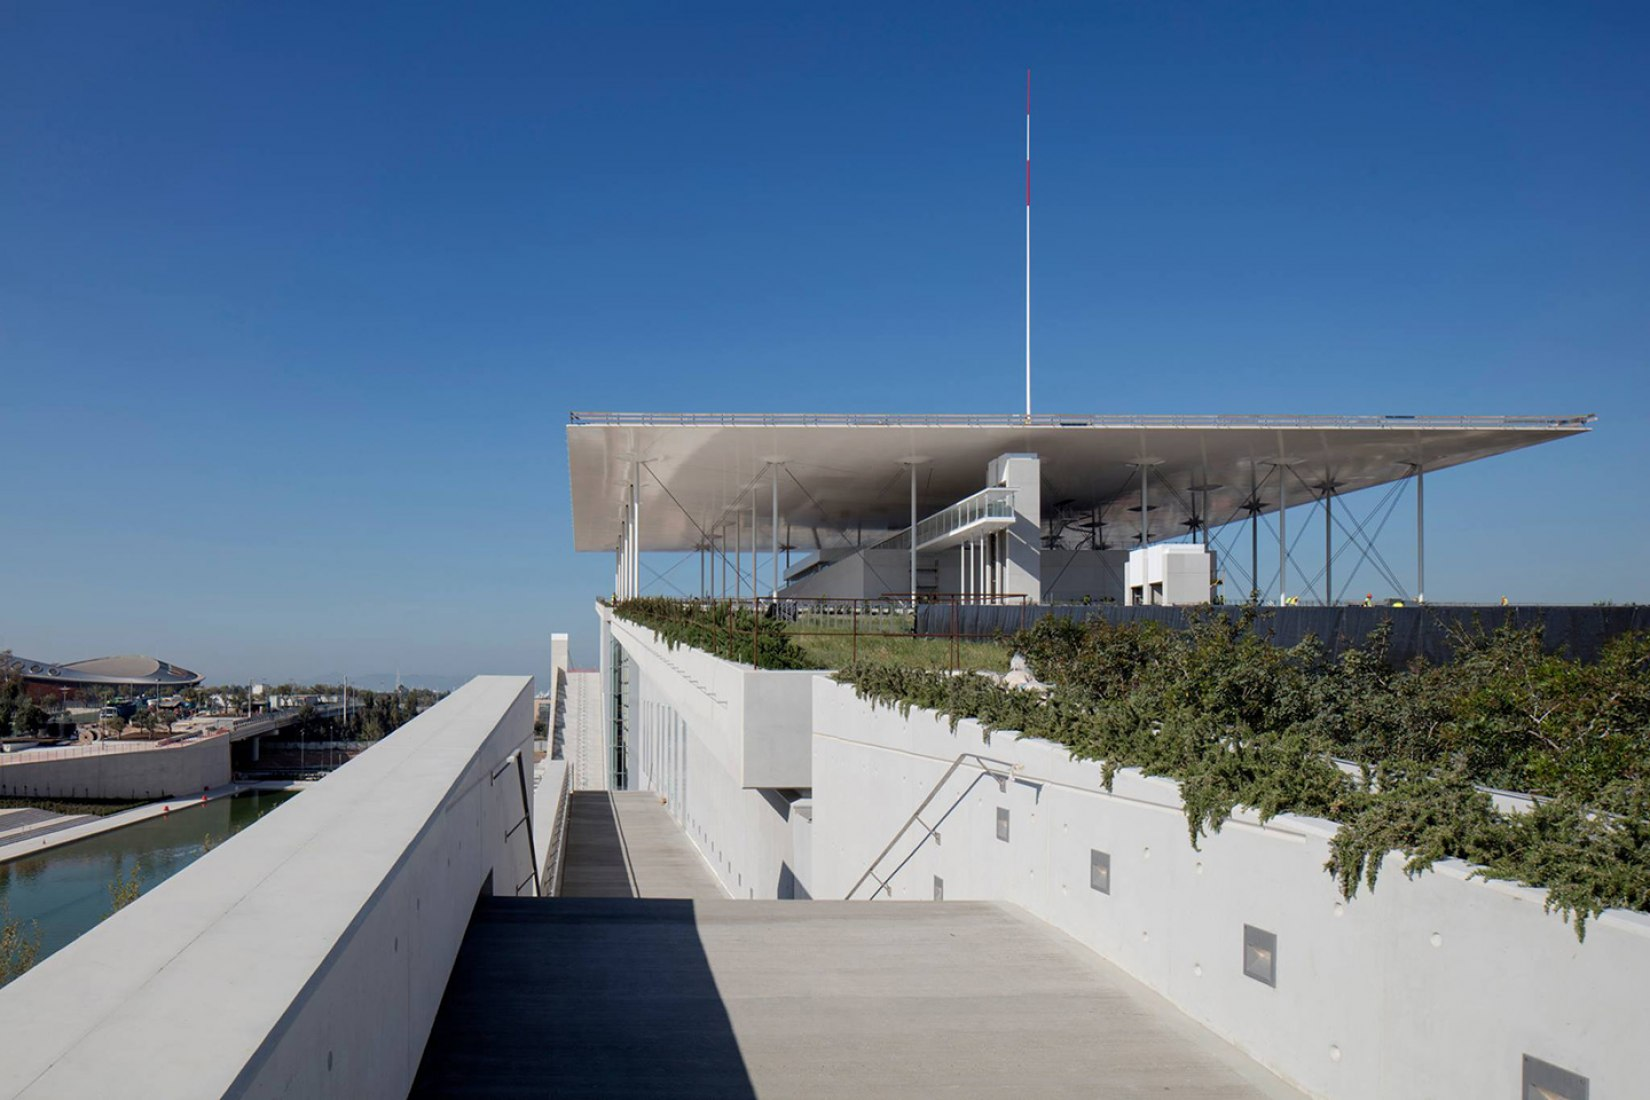 Visitors Center - Agora. Stavros Niarchos Foundation Cultural Center by Renzo Piano. Photograph © Michel Denancé, courtesy of Renzo Piano and Stavros Niarchos Foundation.